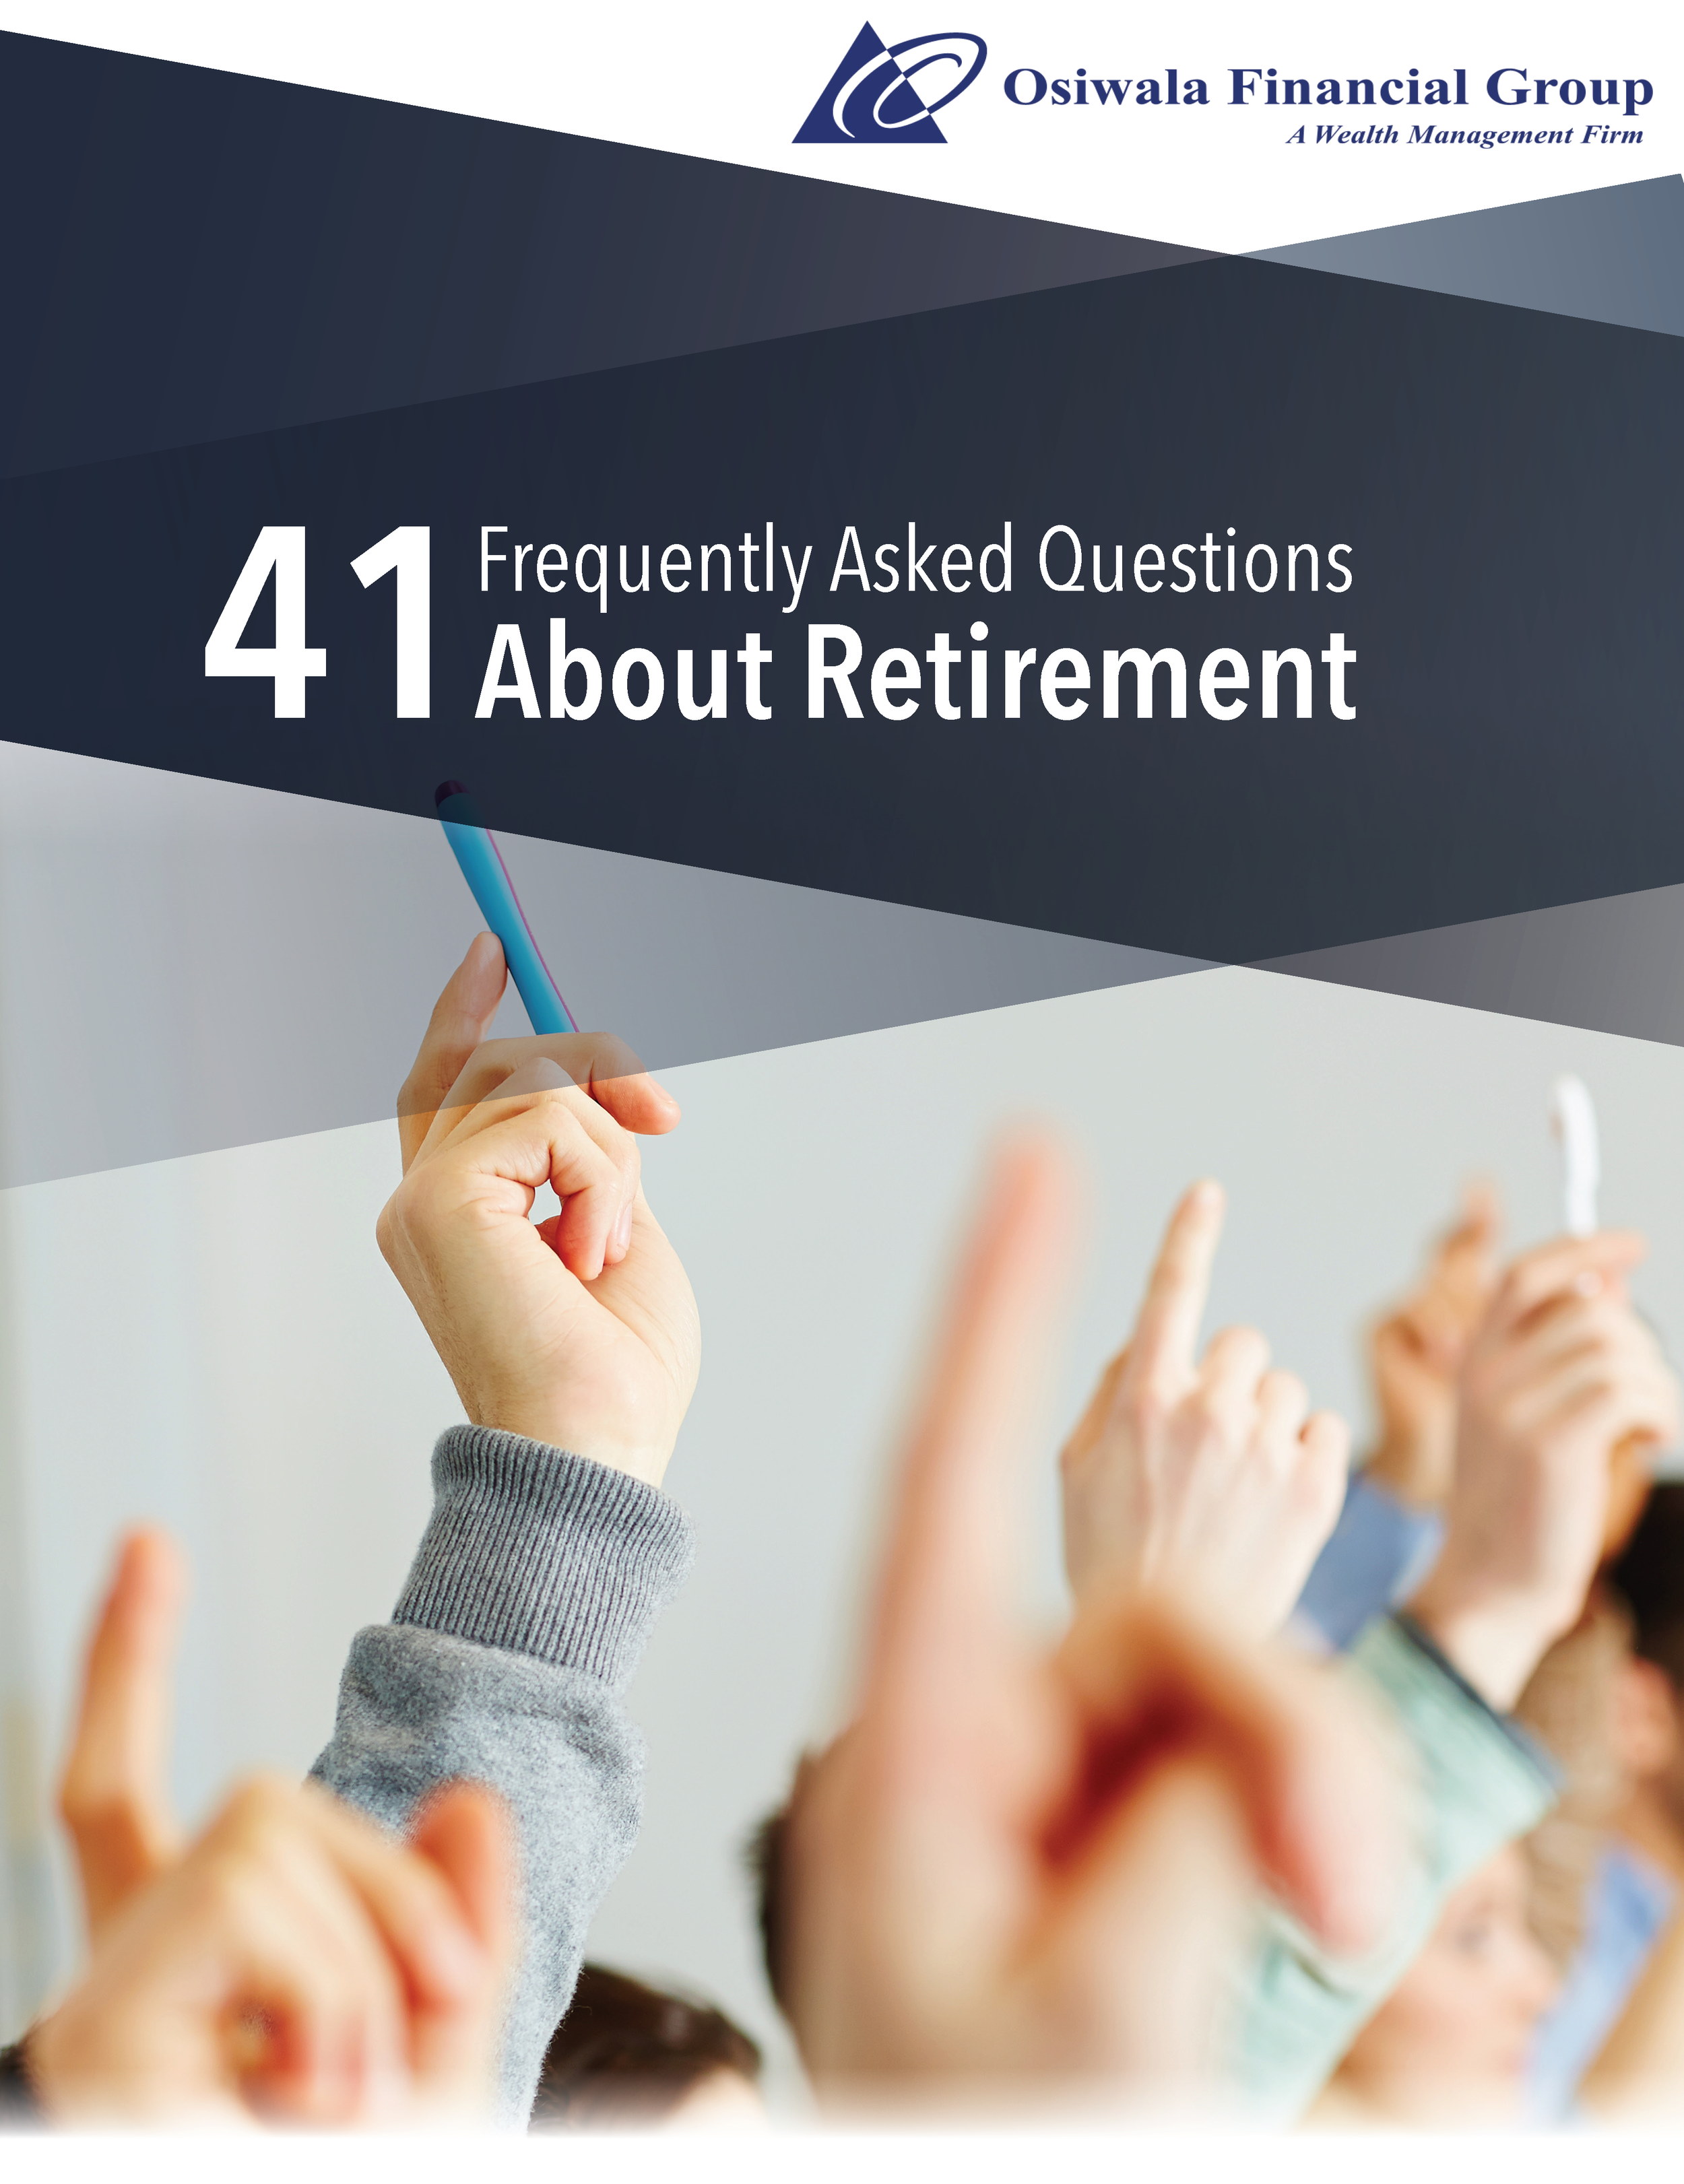 41 Frequently Asked Questions About Retirement